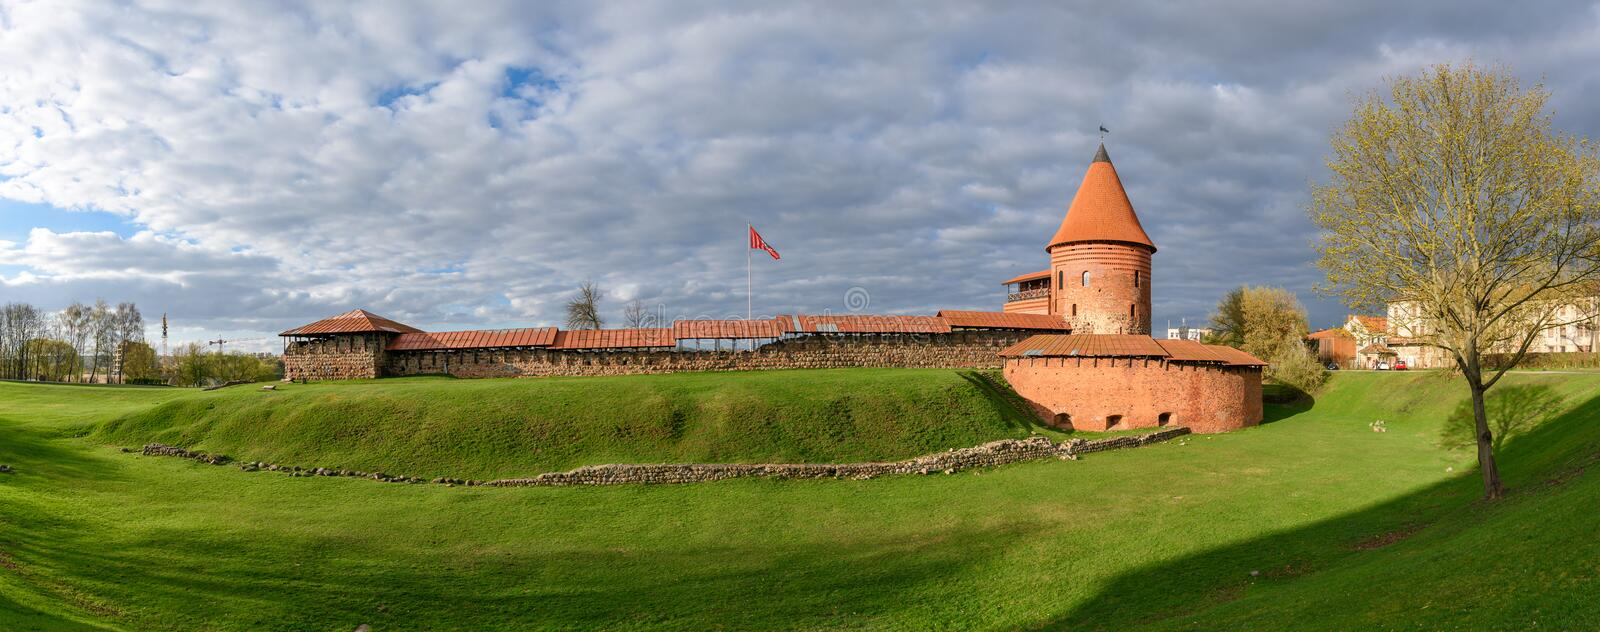 Kaunas Castle, Lithuania. Historical gothic Kaunas Castle from medieval times in Kaunas, Lithuania. Wide angle panoramic view on cloudy sky background stock image